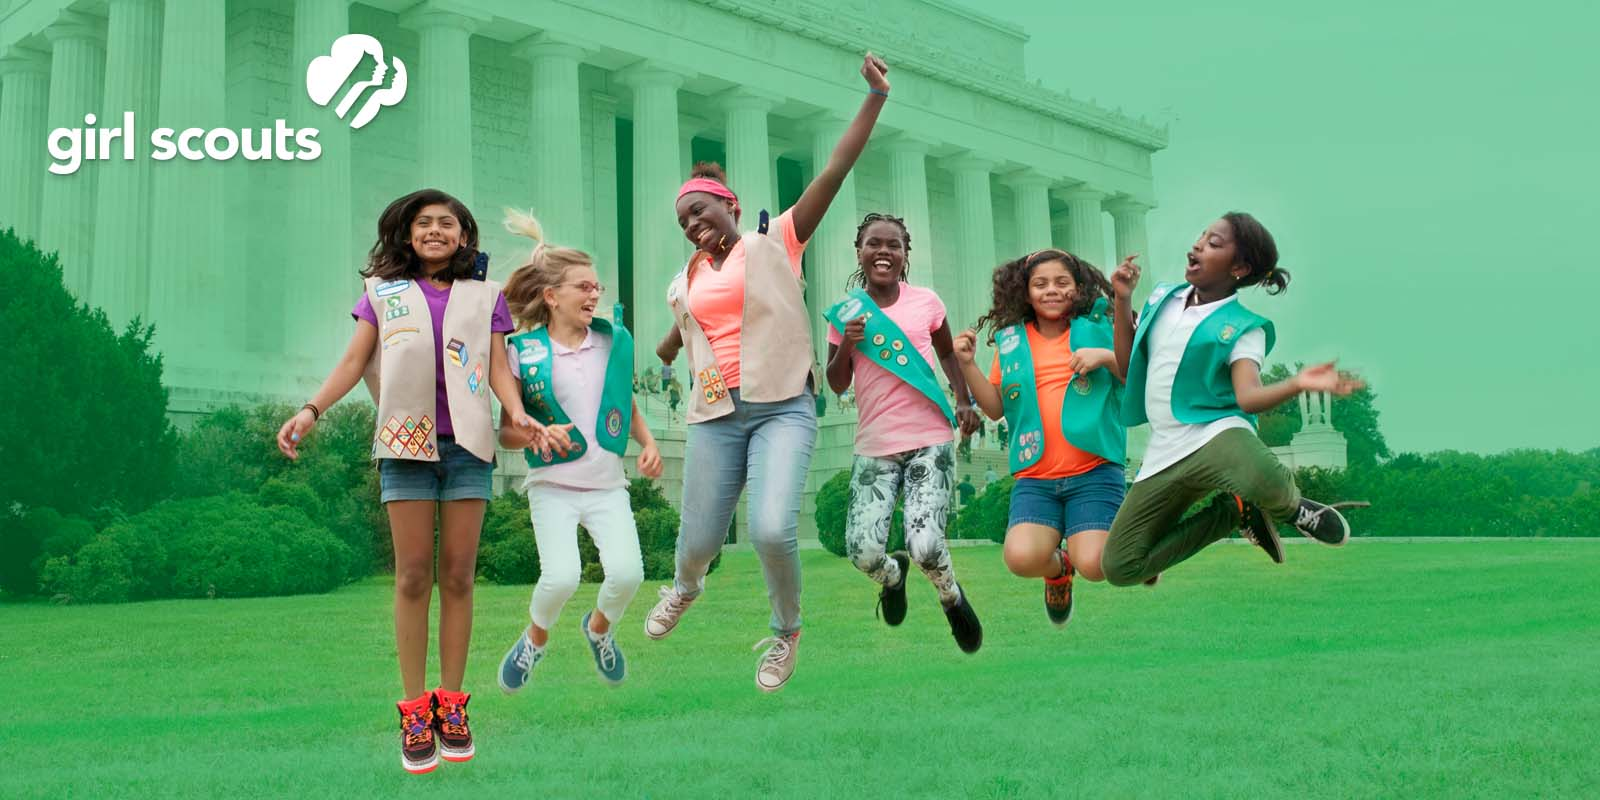 girl scouts of the usa   bing images